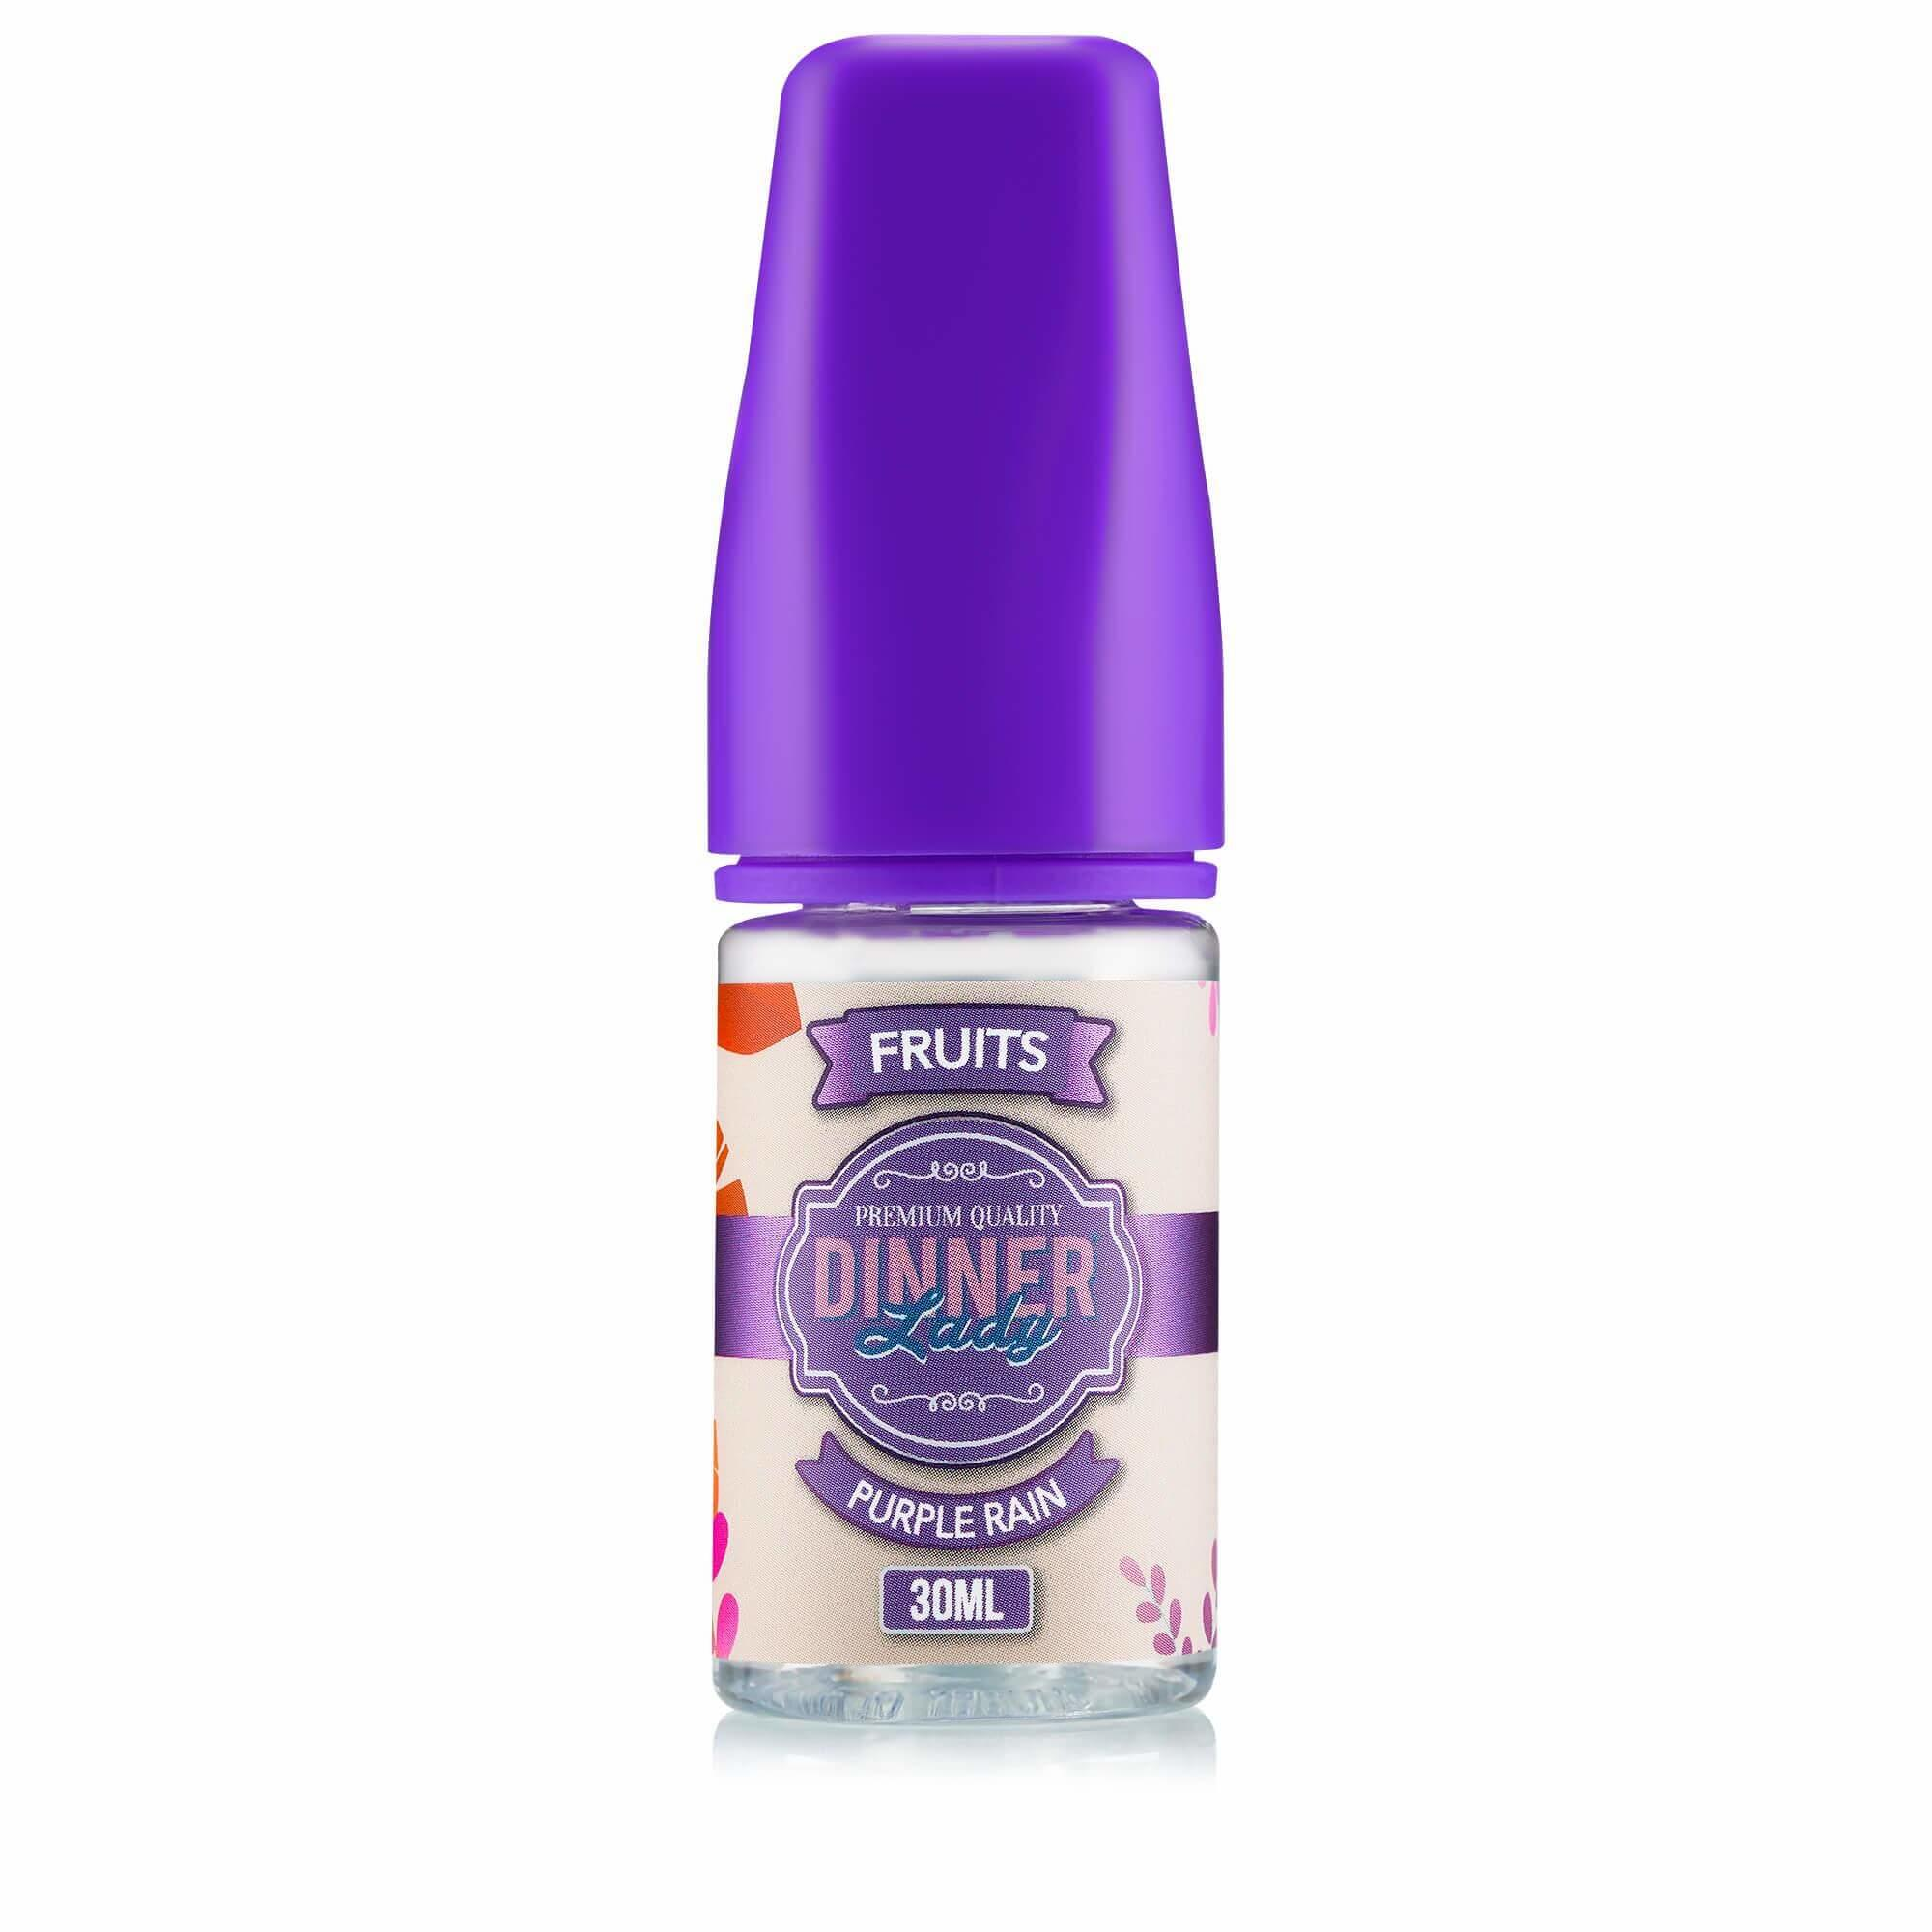 Purple Rain Concentrate Dinner Lady 30ml